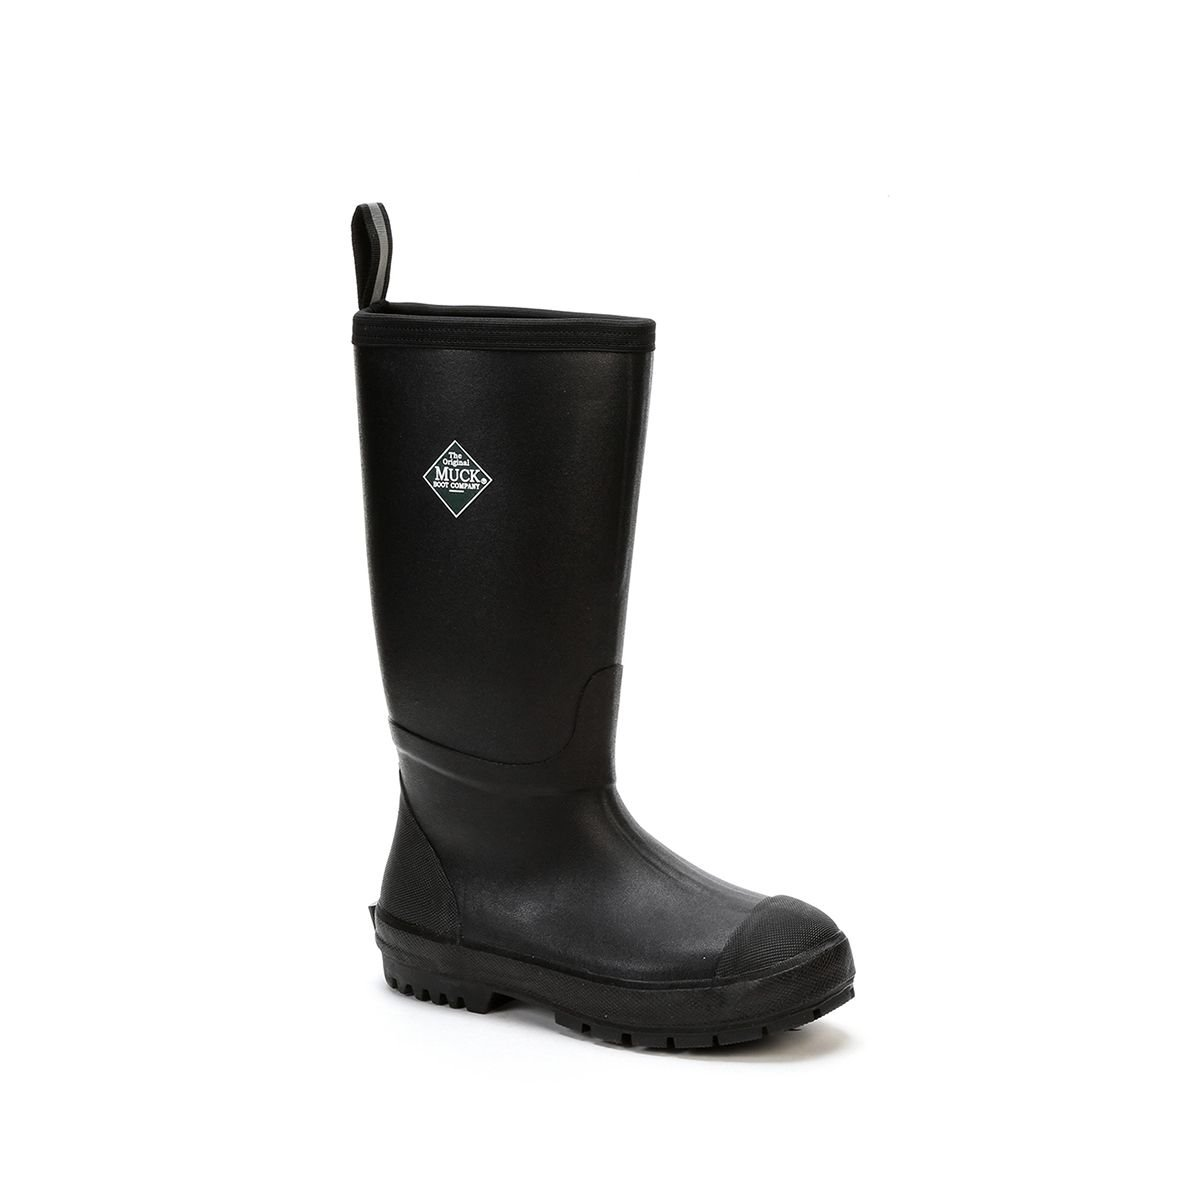 Muck Boot Men's Chore Resistant Tall Work Boot, Black, 13 M US